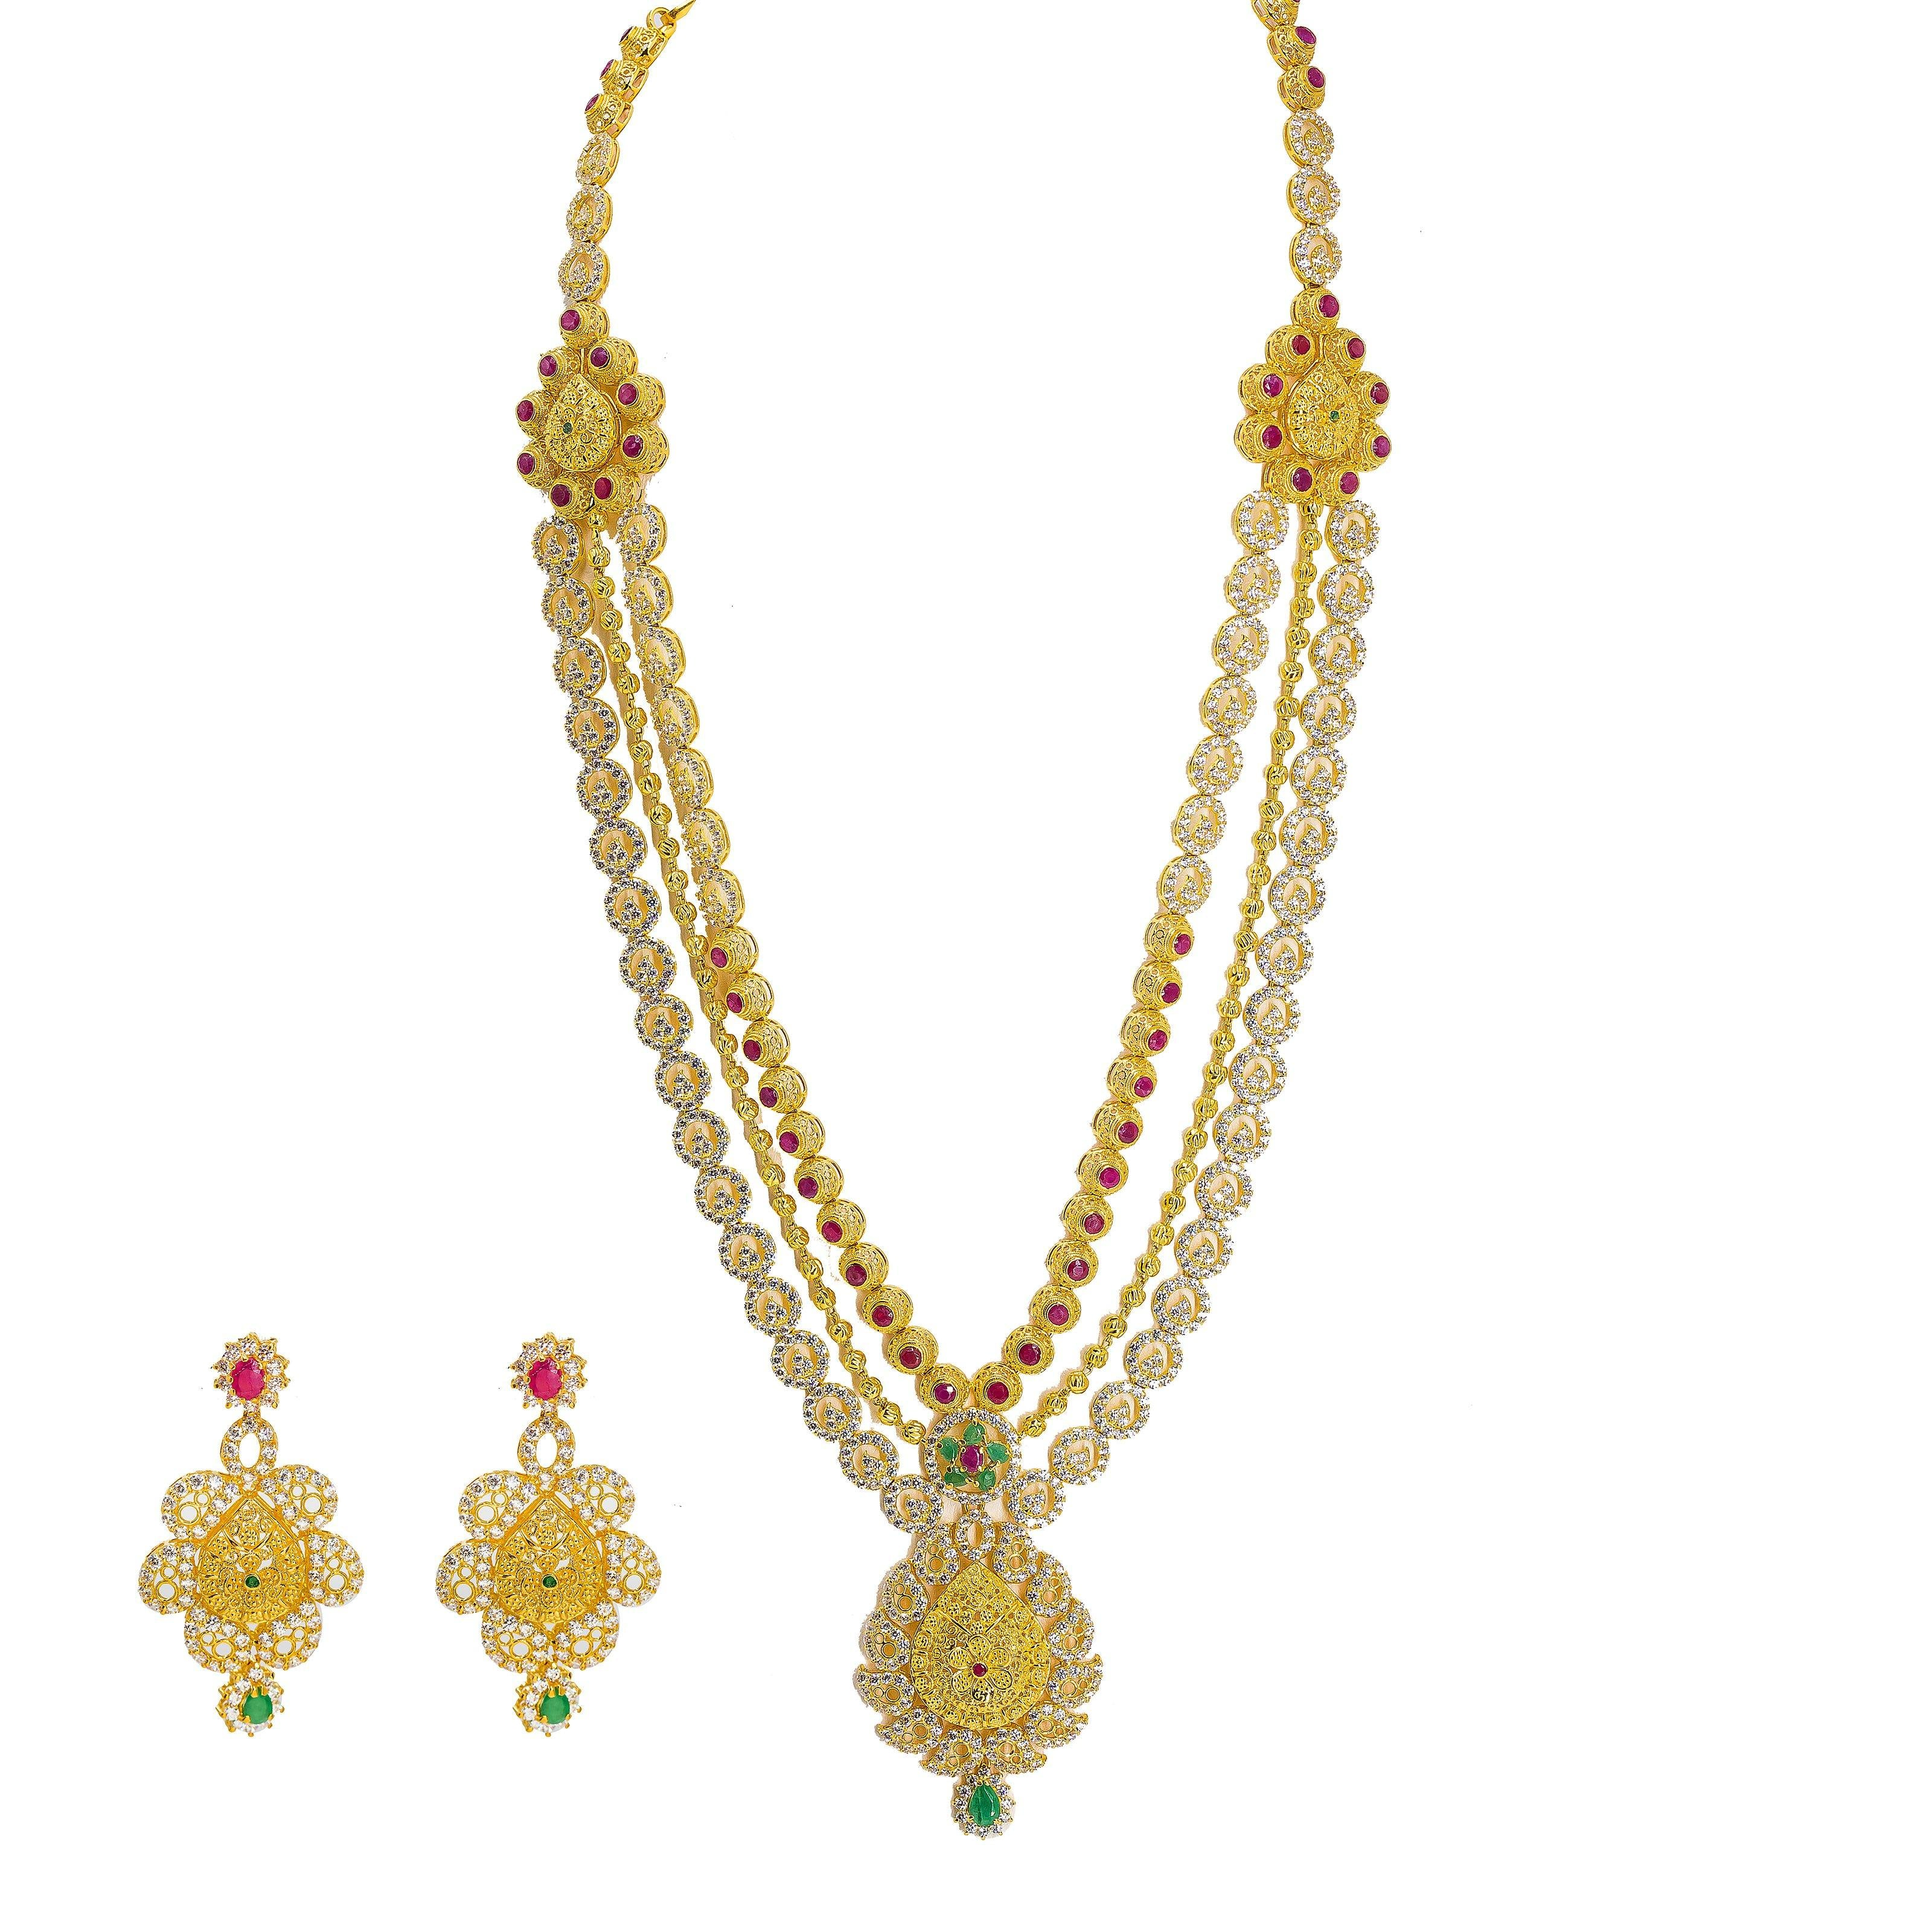 22k yellow gold antique necklace earrings set w ruby emerald cz 22k yellow gold antique necklace earrings set w ruby emerald cz virani jewelers aloadofball Image collections